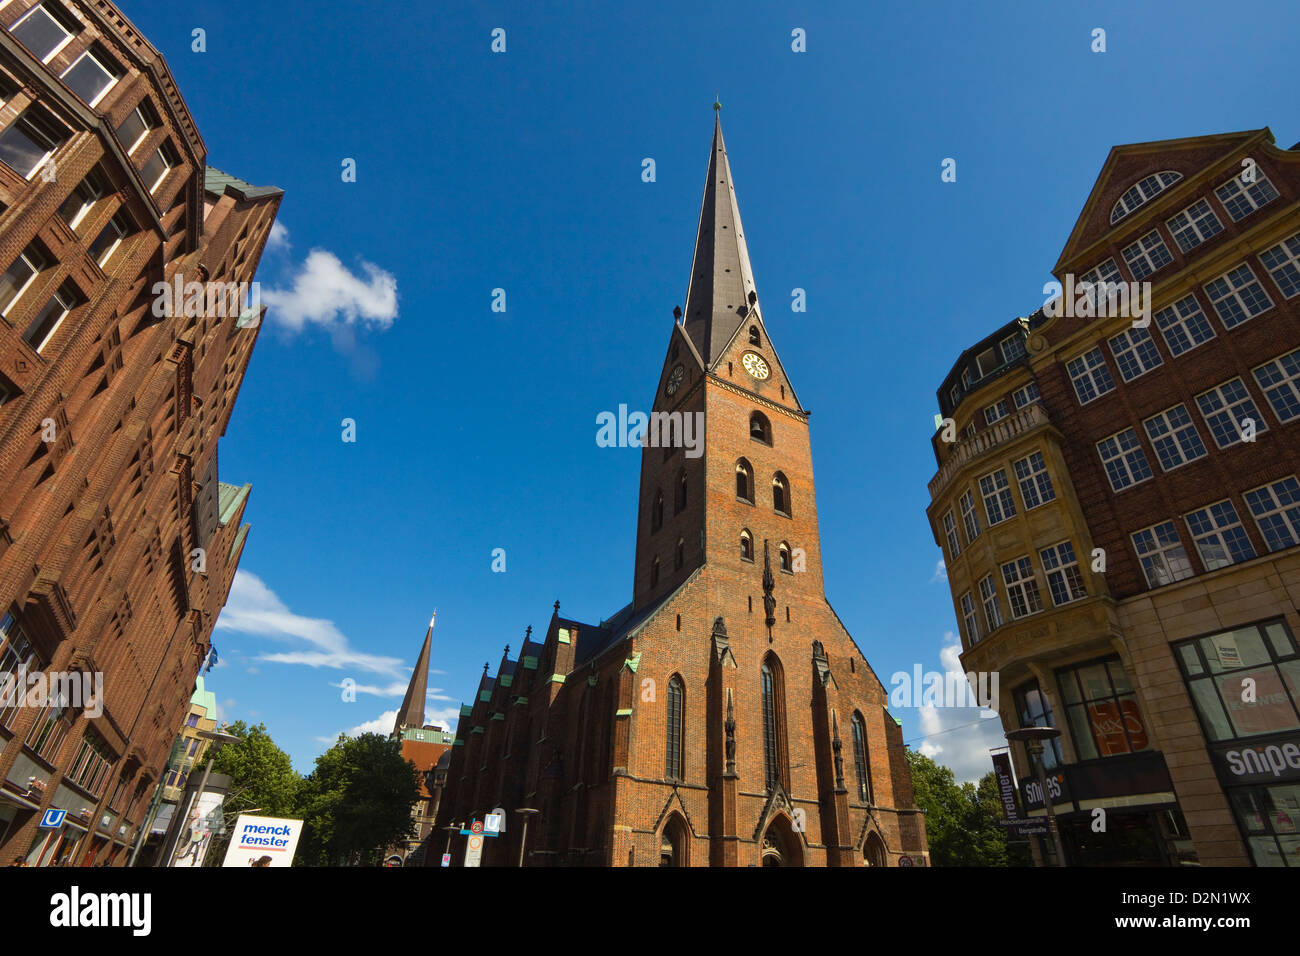 St. Peter's Cathedral, rebuilt several times since the 11th century, on Moenckebergstrasse and Bergstrasse, - Stock Image